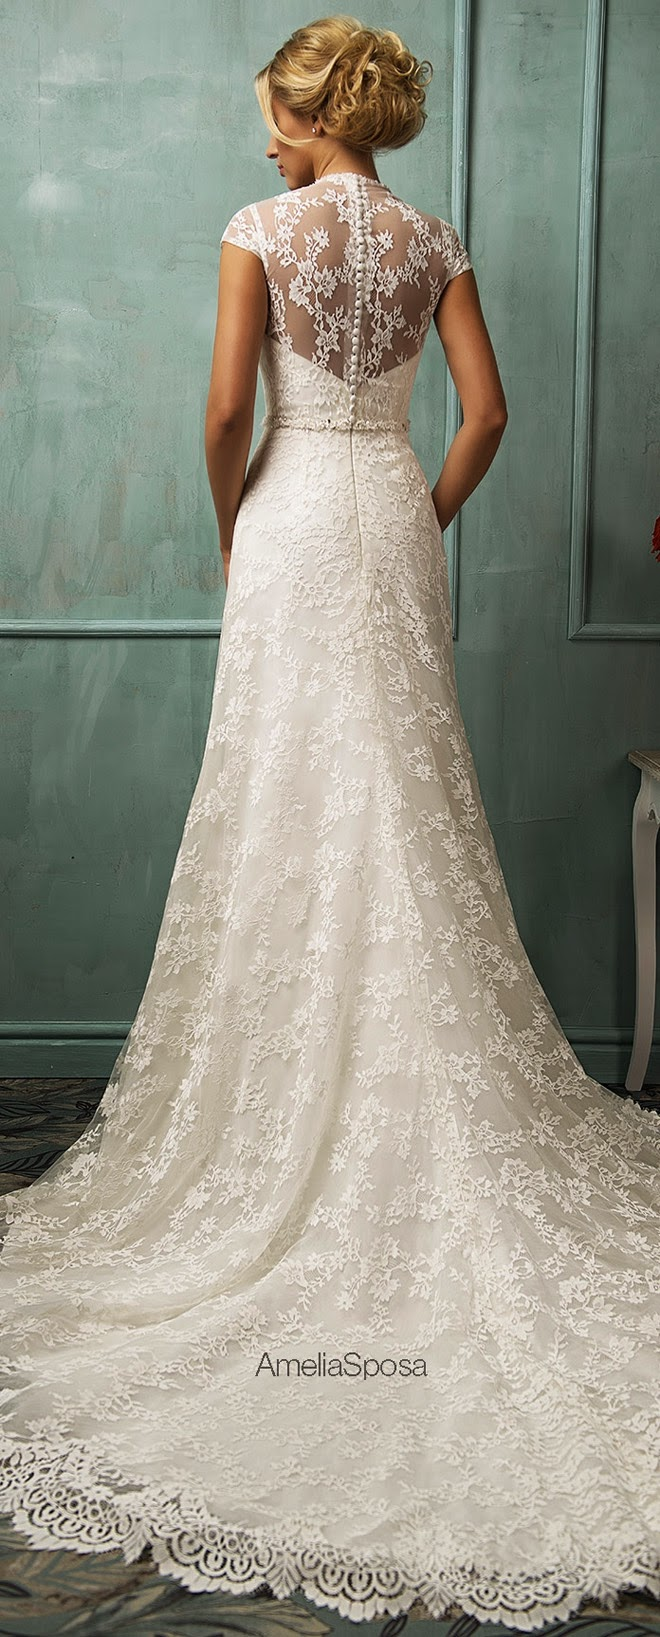 Amelia sposa 2014 wedding dresses belle the magazine for Wedding dresses in la